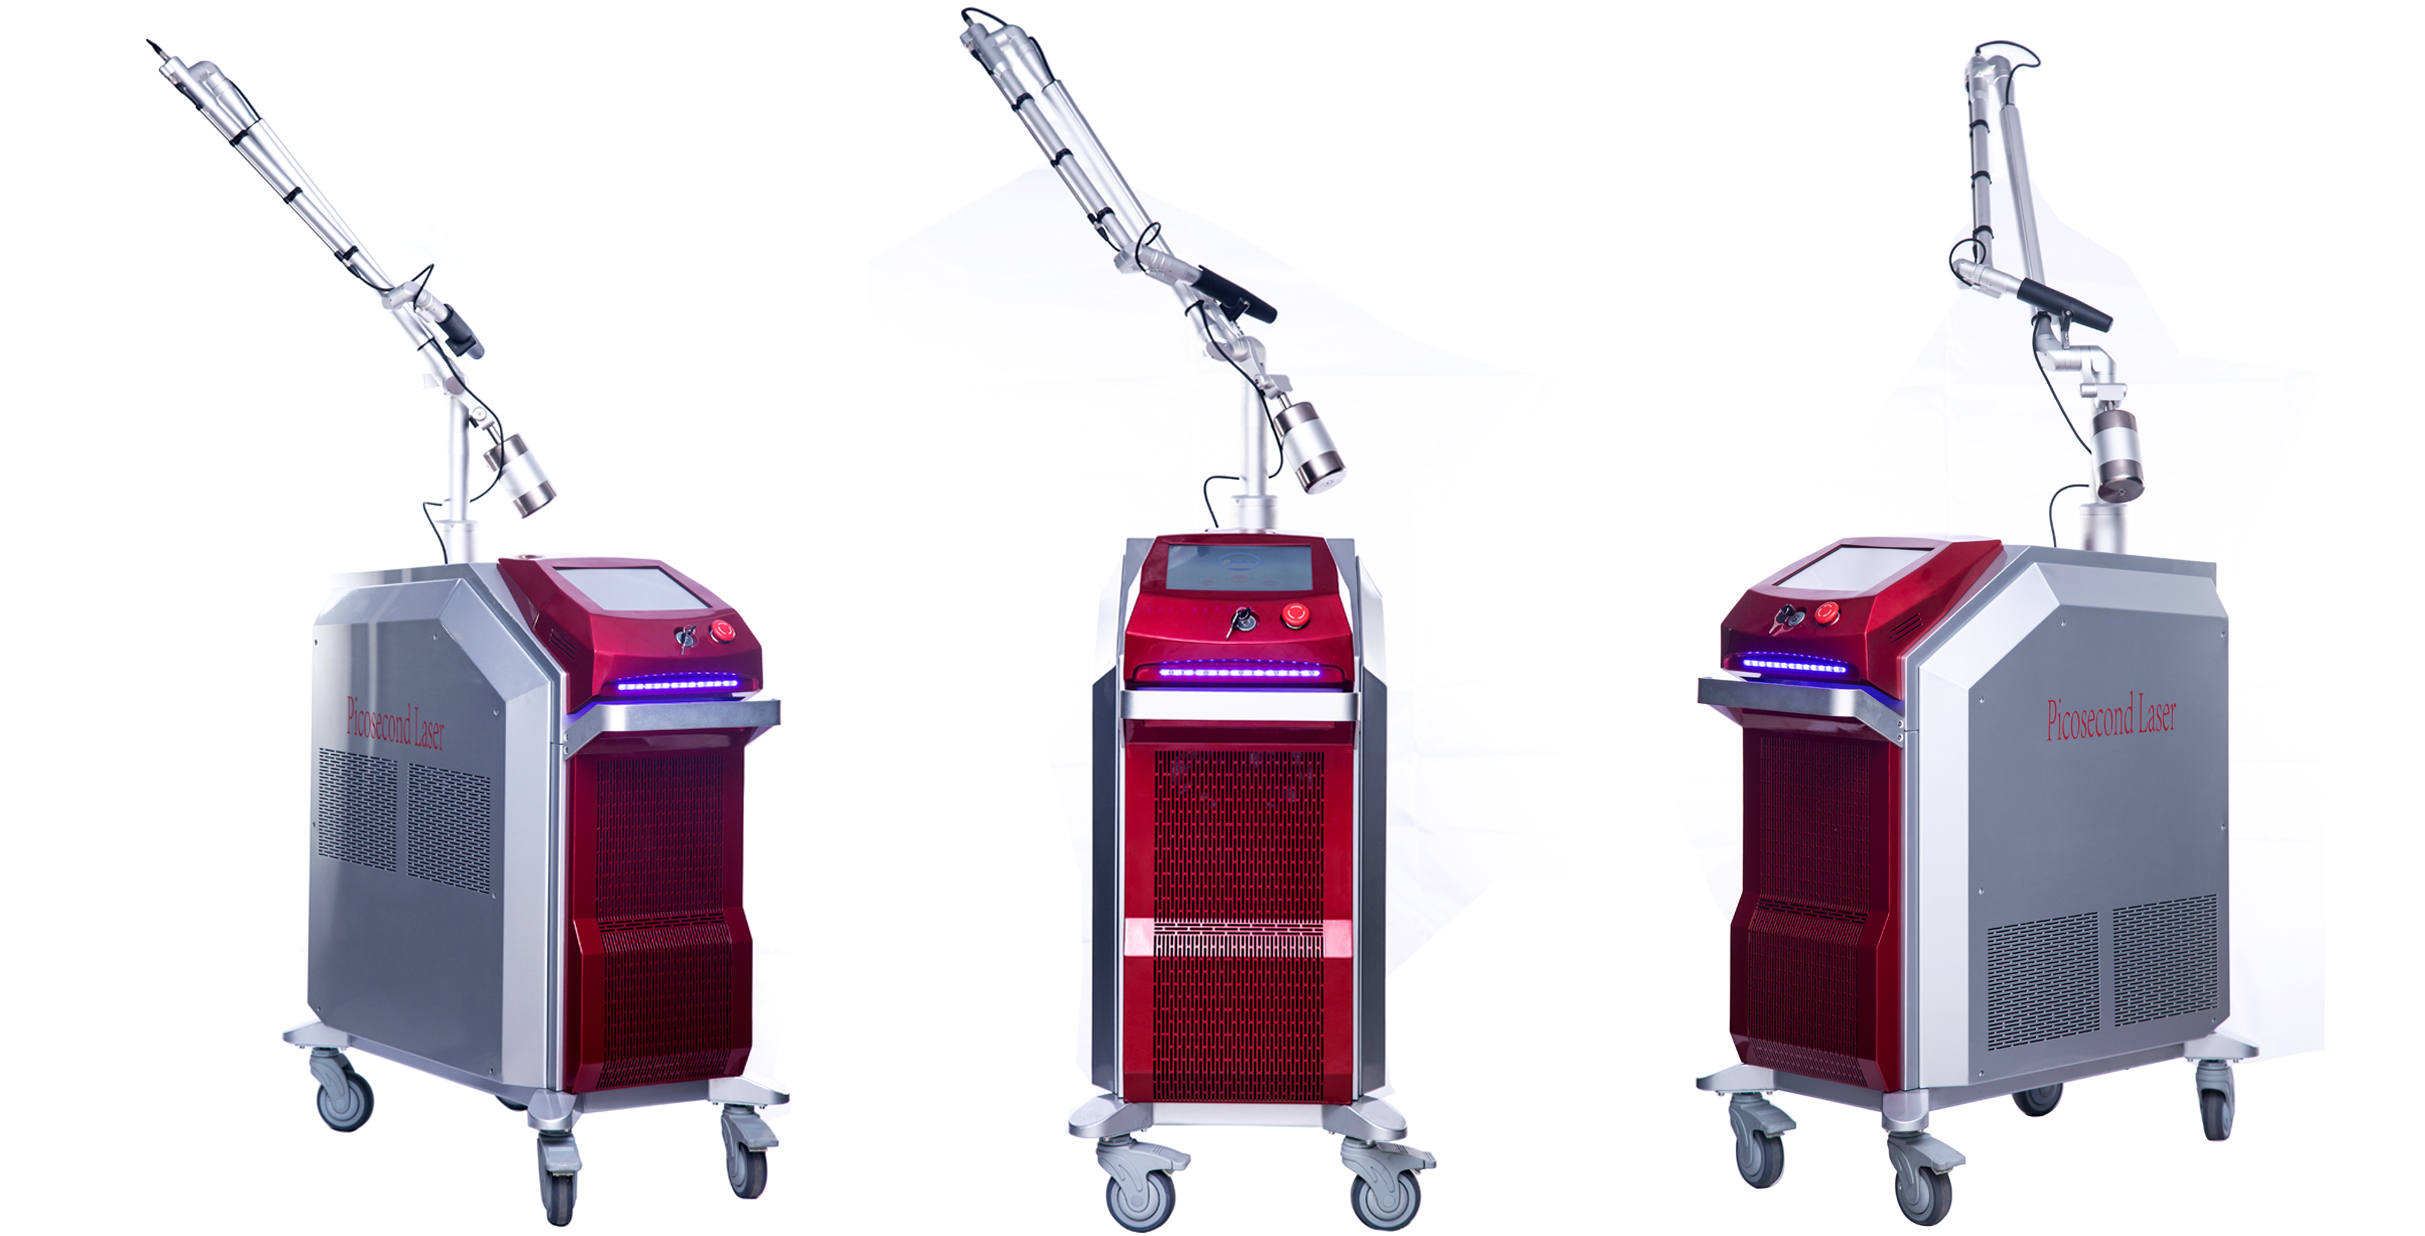 High energy medical Q Switched Nd Yag Laser tattoo/speckle/pigmentation removal picoway laser machine